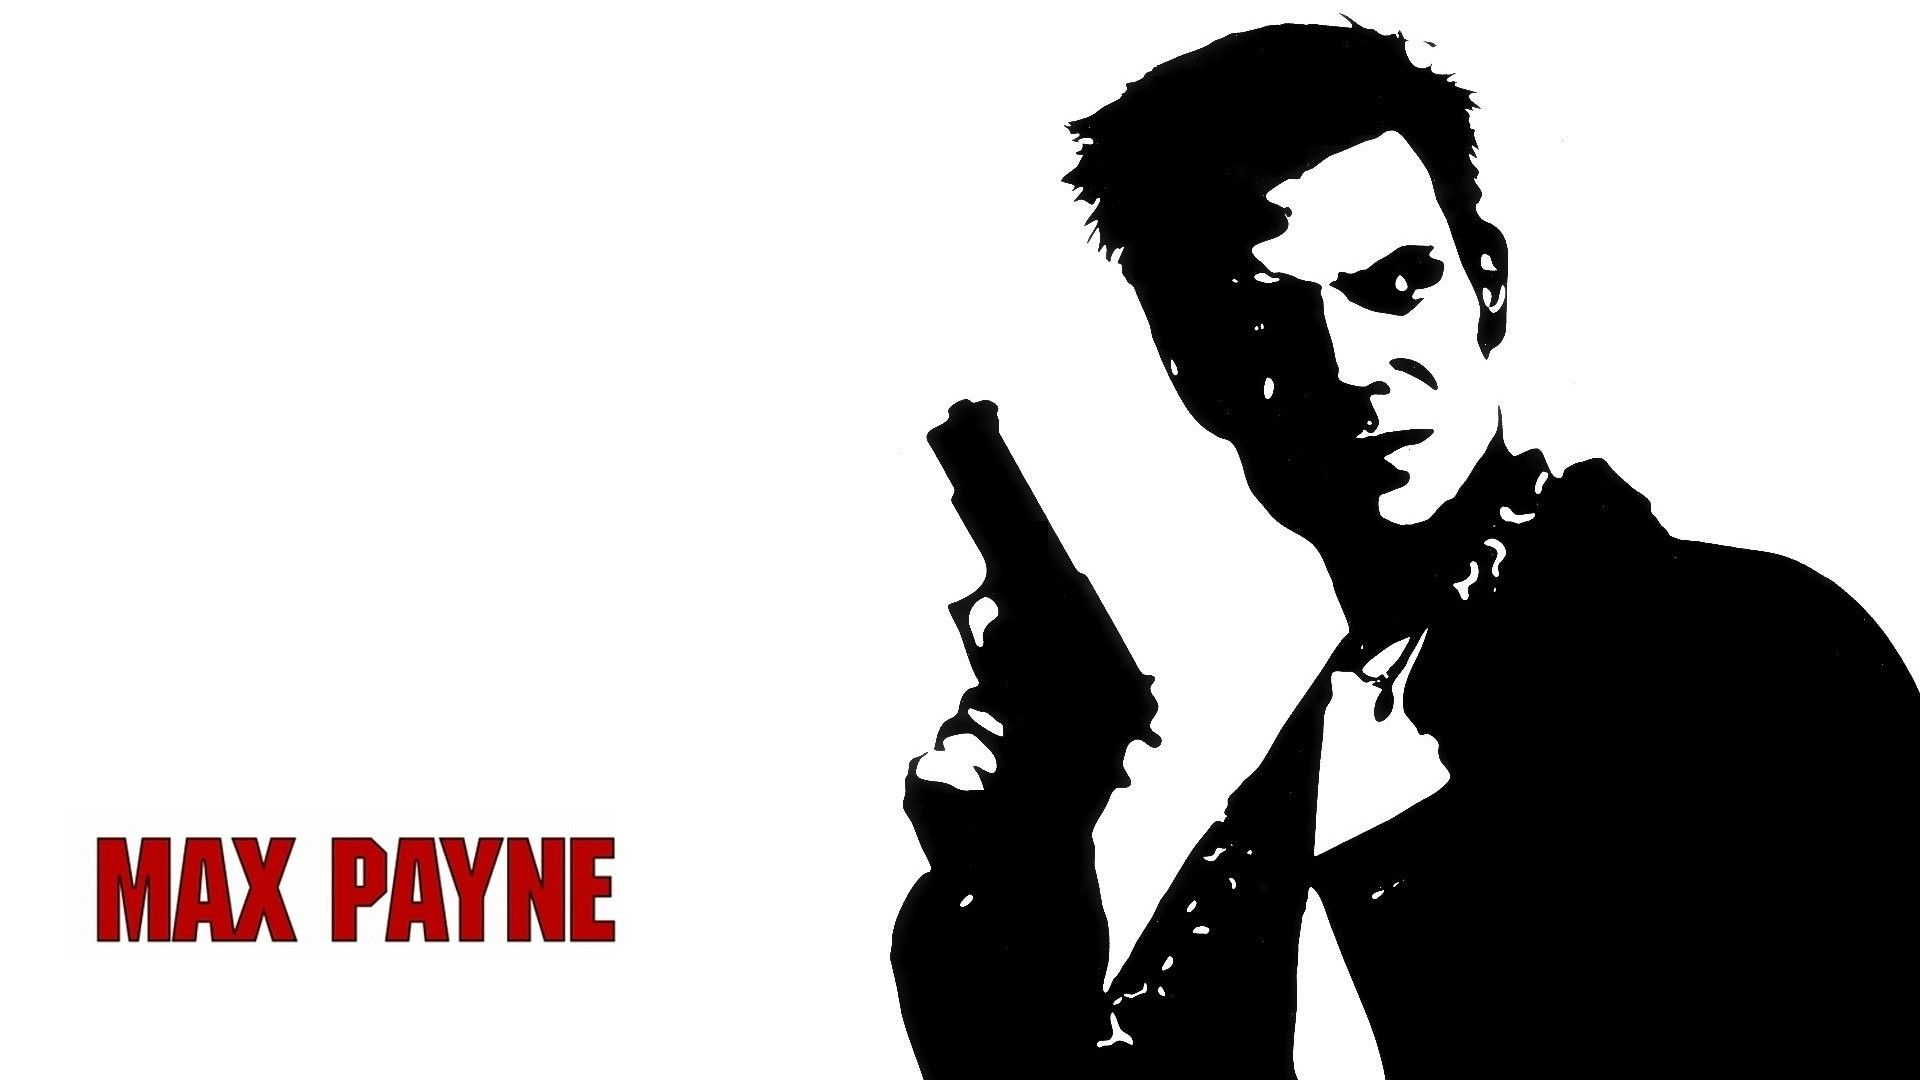 Max Payne Wallpapers Top Free Max Payne Backgrounds